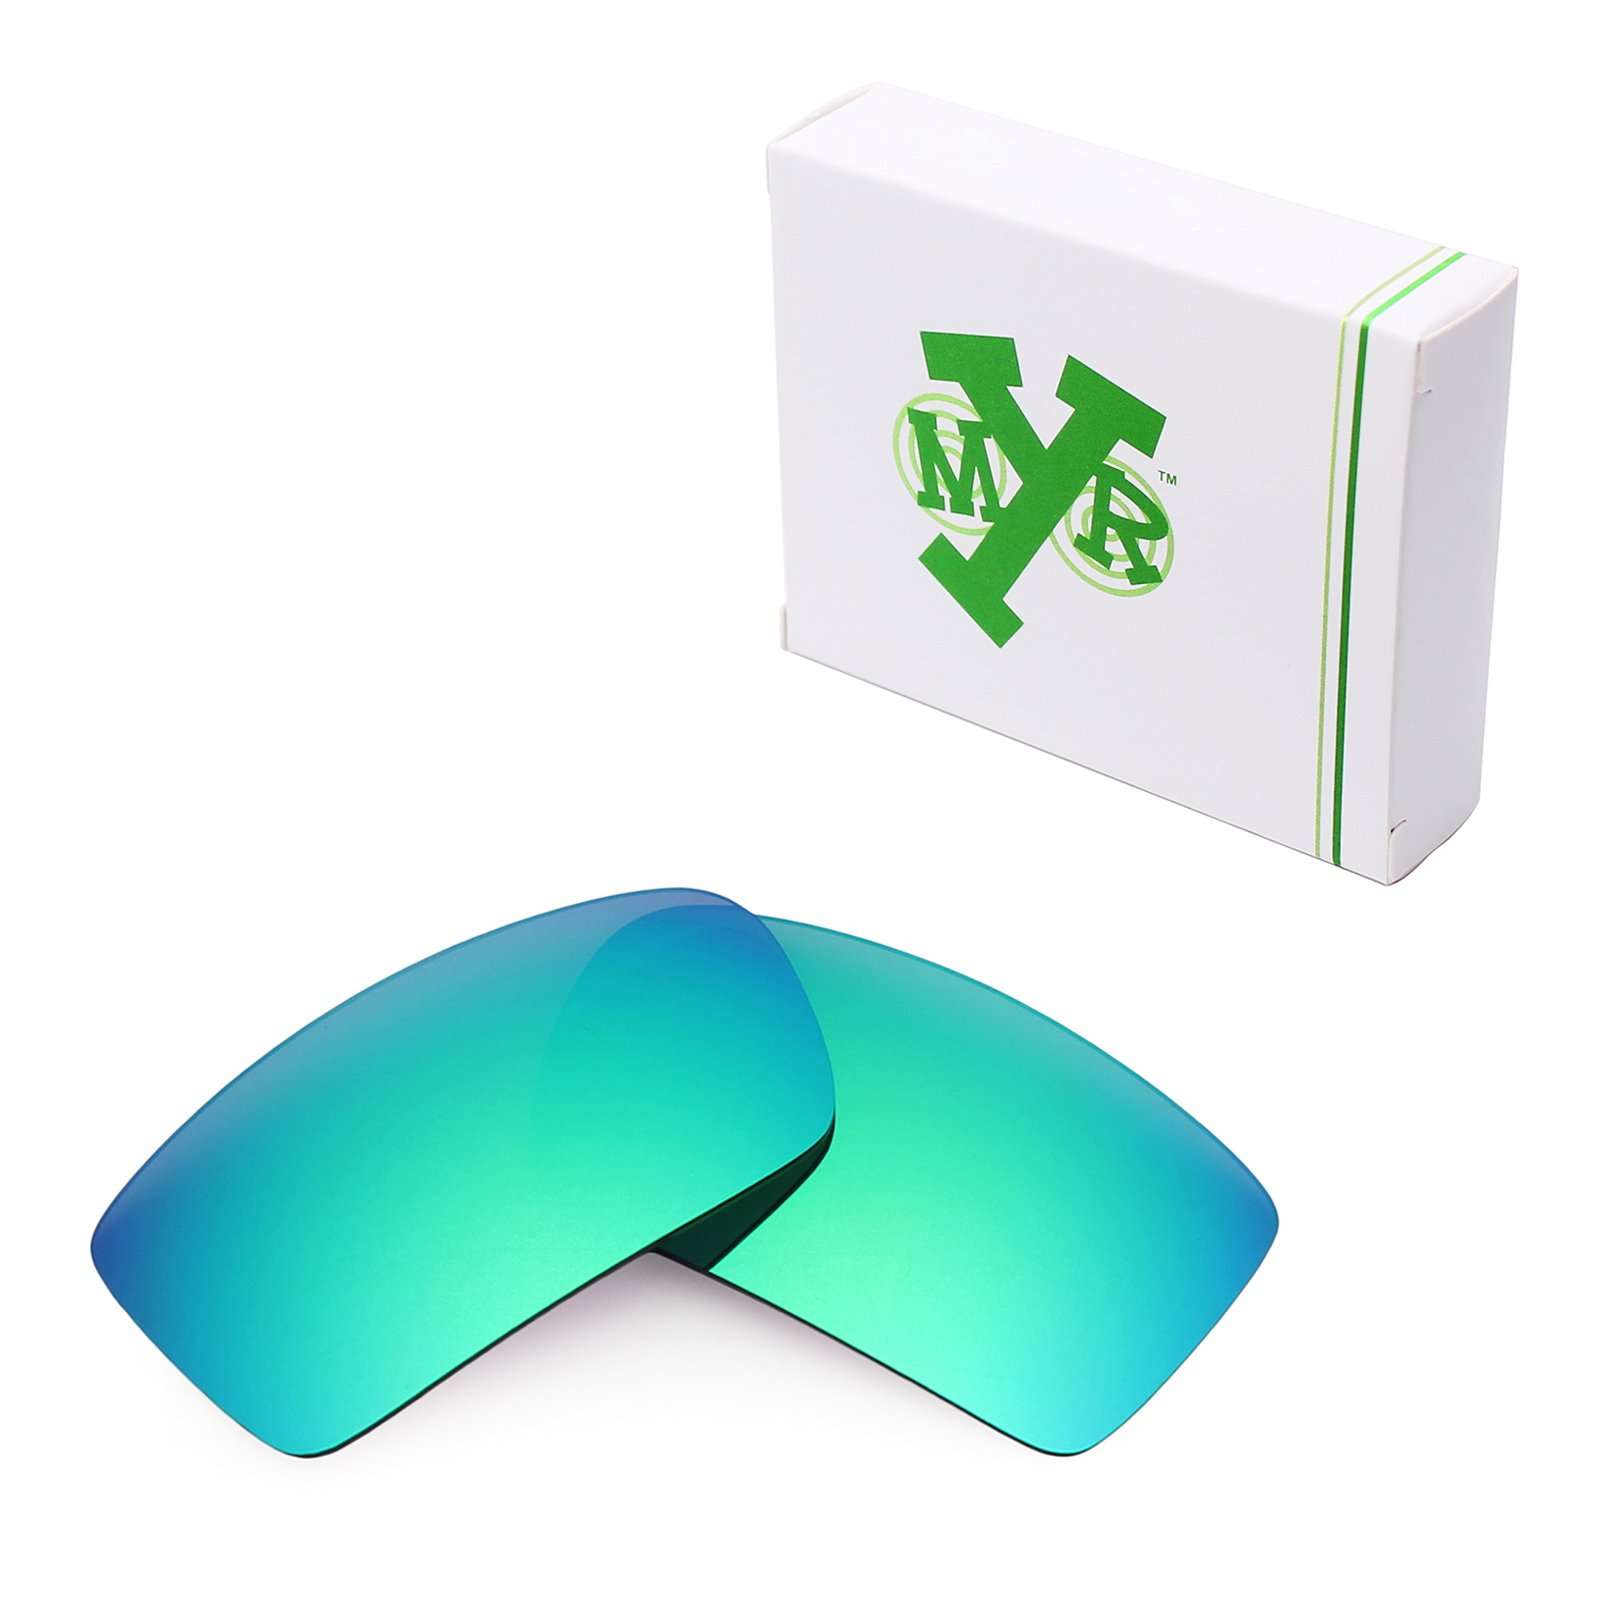 Mryok Polarized Replacement Lenses for Oakley Gascan - Emerald Green by Mryok